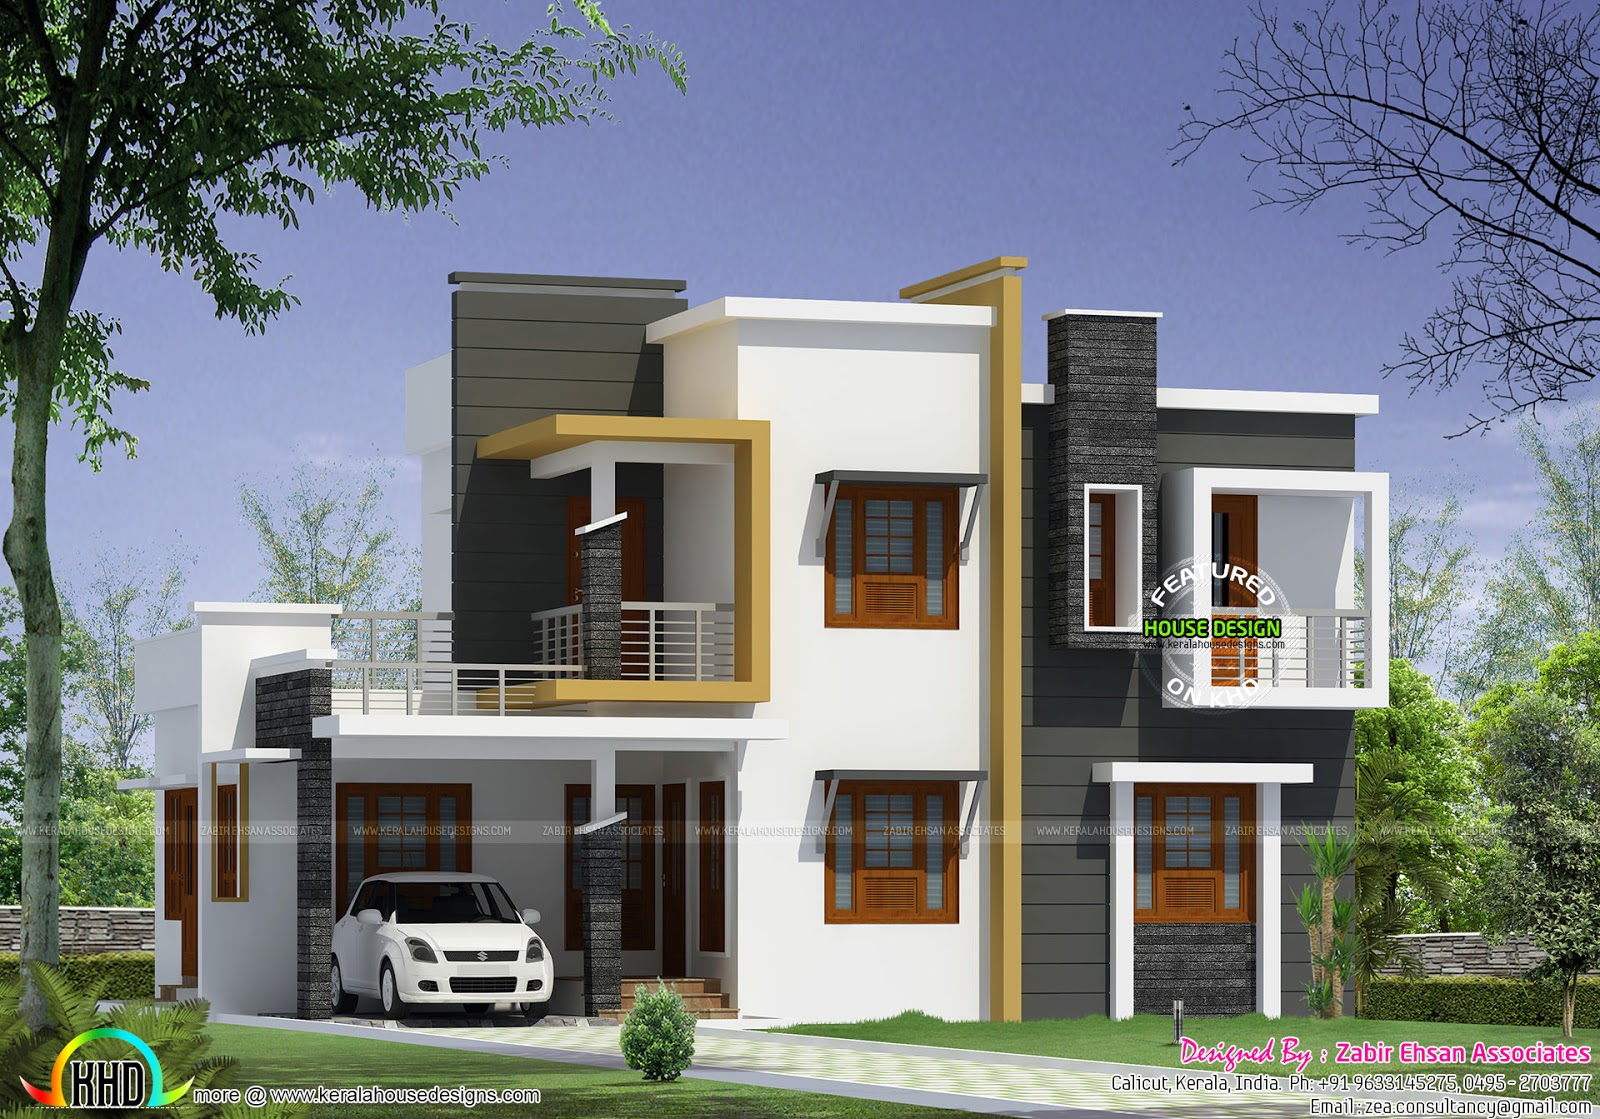 Box type modern house plan kerala home design and floor for Type of floors in houses